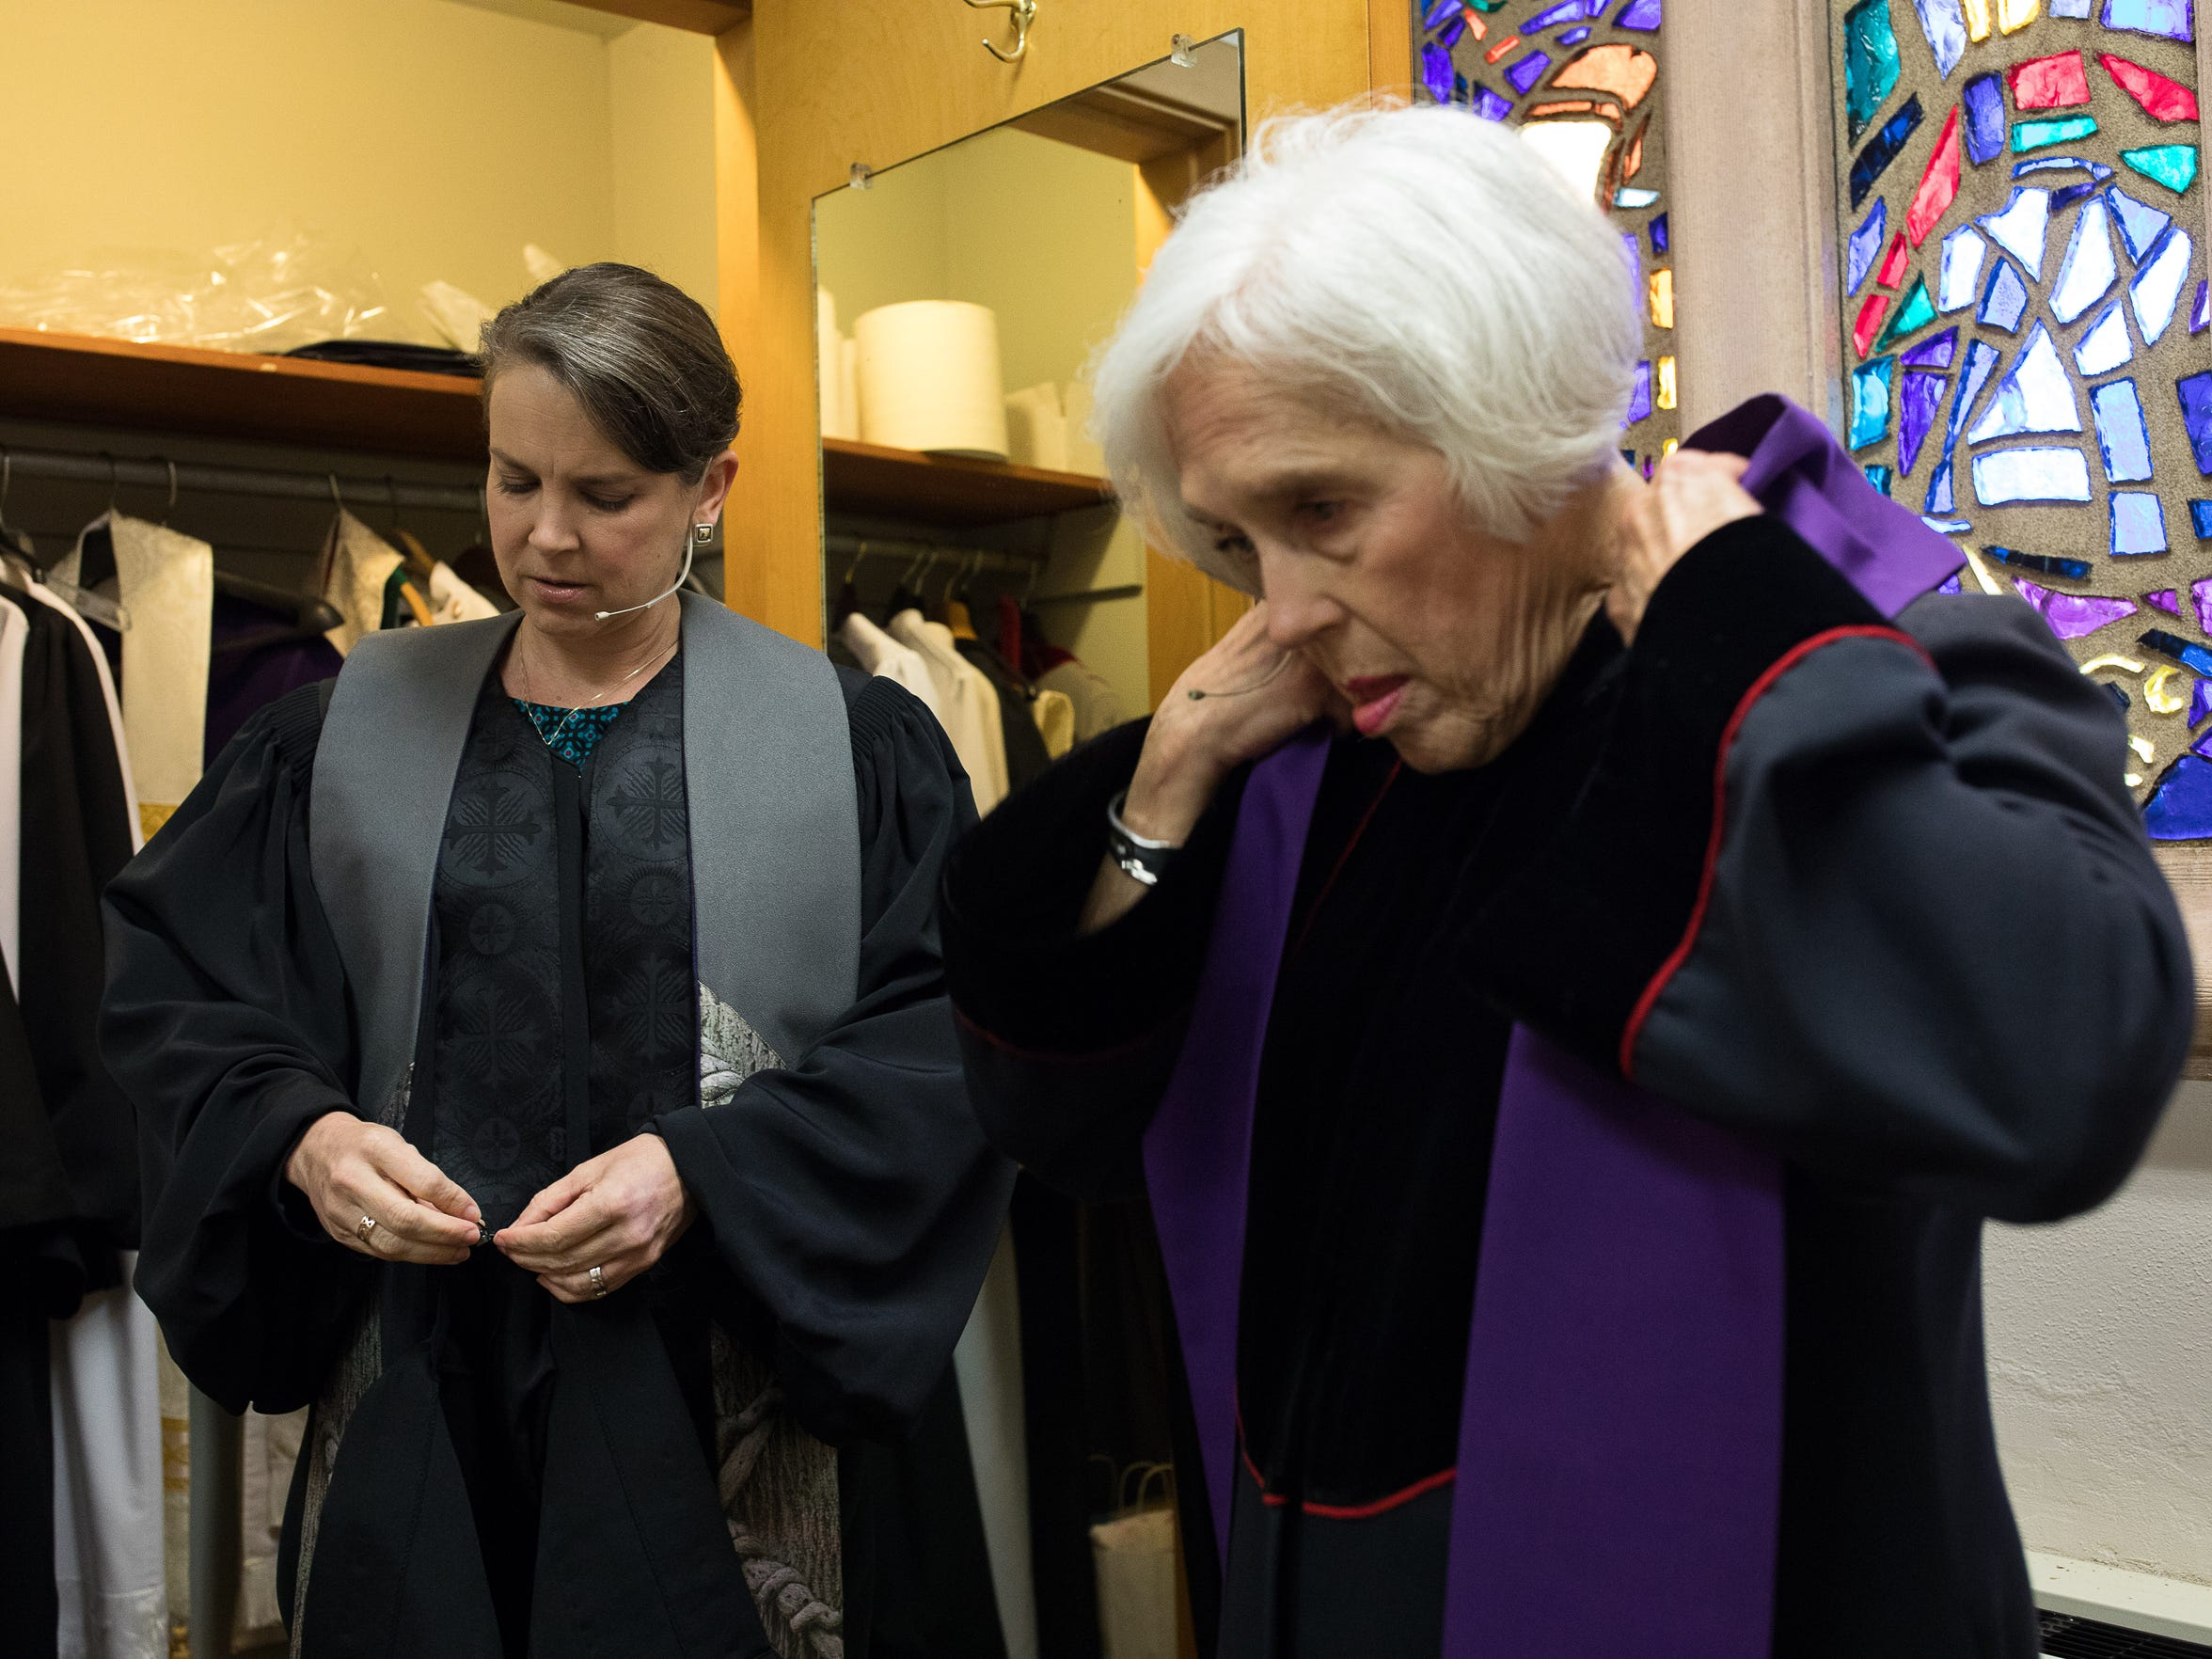 Pamela Dykehouse pastor of the First United Methodist Church in Corpus Christi puts on her robe before service on Sunday, Feb. 25, 2018.